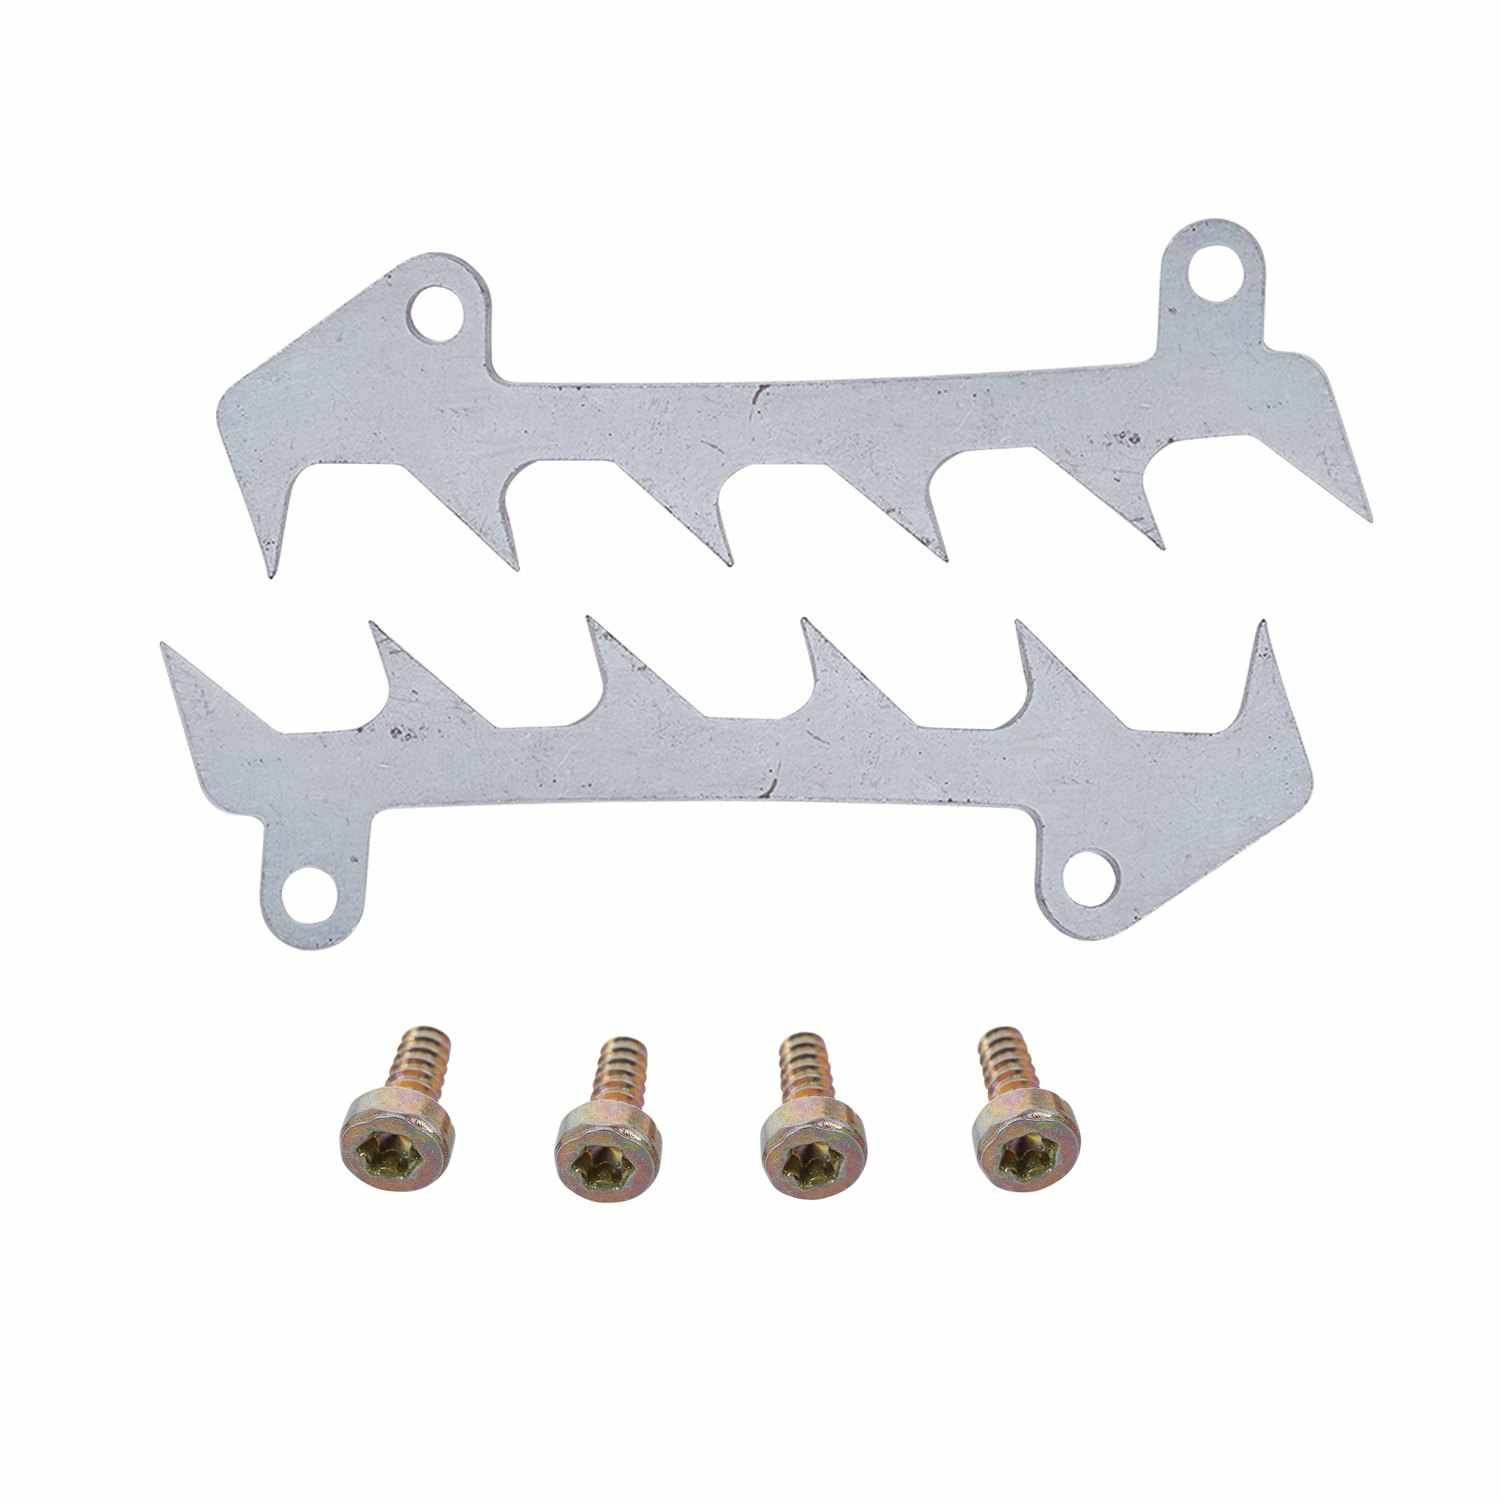 Bumper Spike Felling Dog Screw Nut Kit for Stihl MS170 MS170C MS180 MS180C MS171 MS181 MS211 017 018 018C 019T 021 023 025 Chainsaw